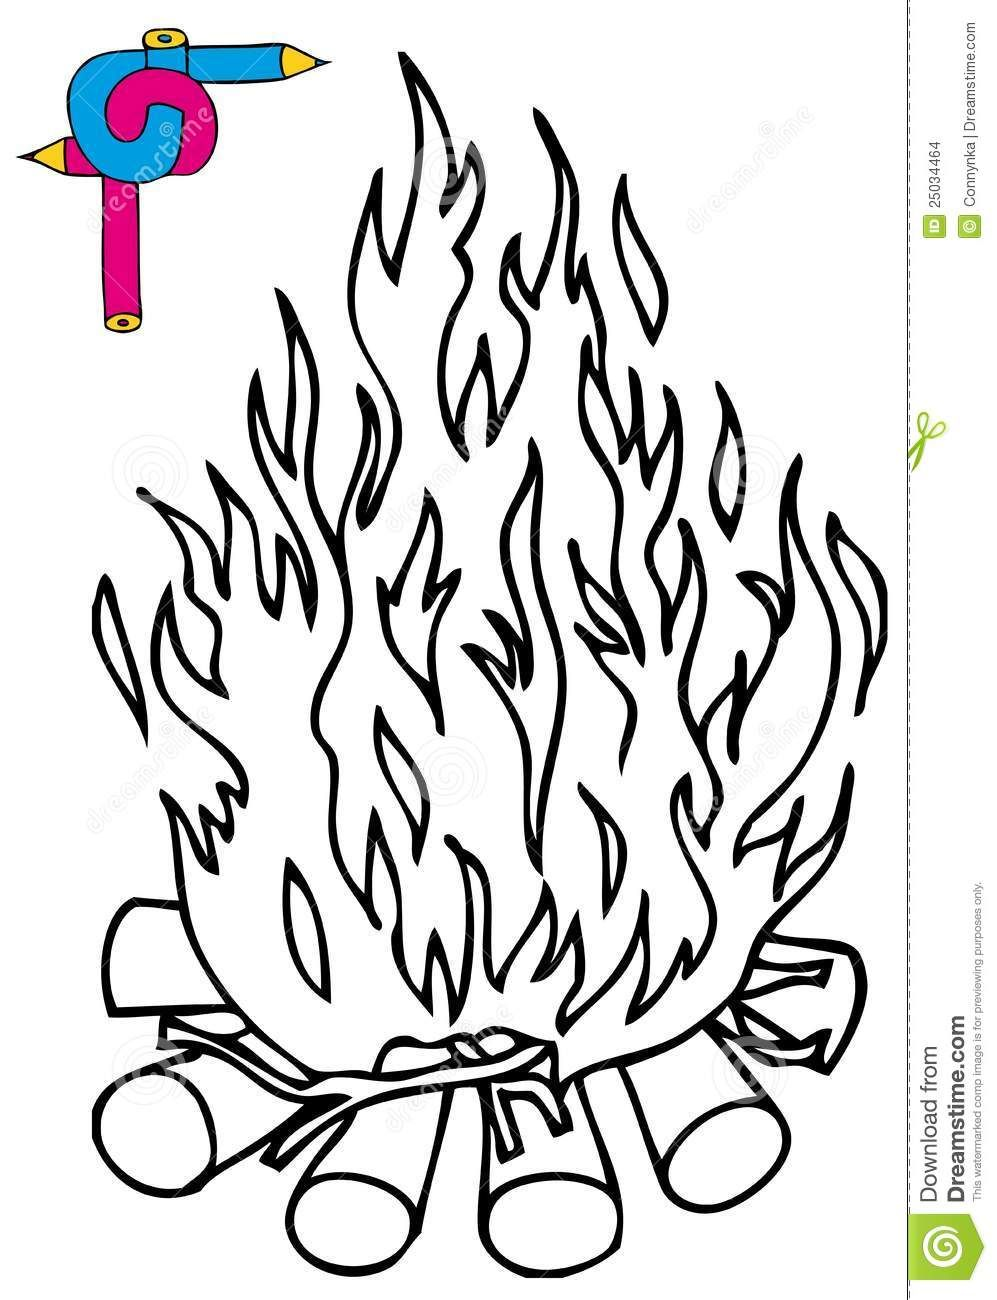 - More Similar Stock Images Of ` Coloring Image Campfire Sketch